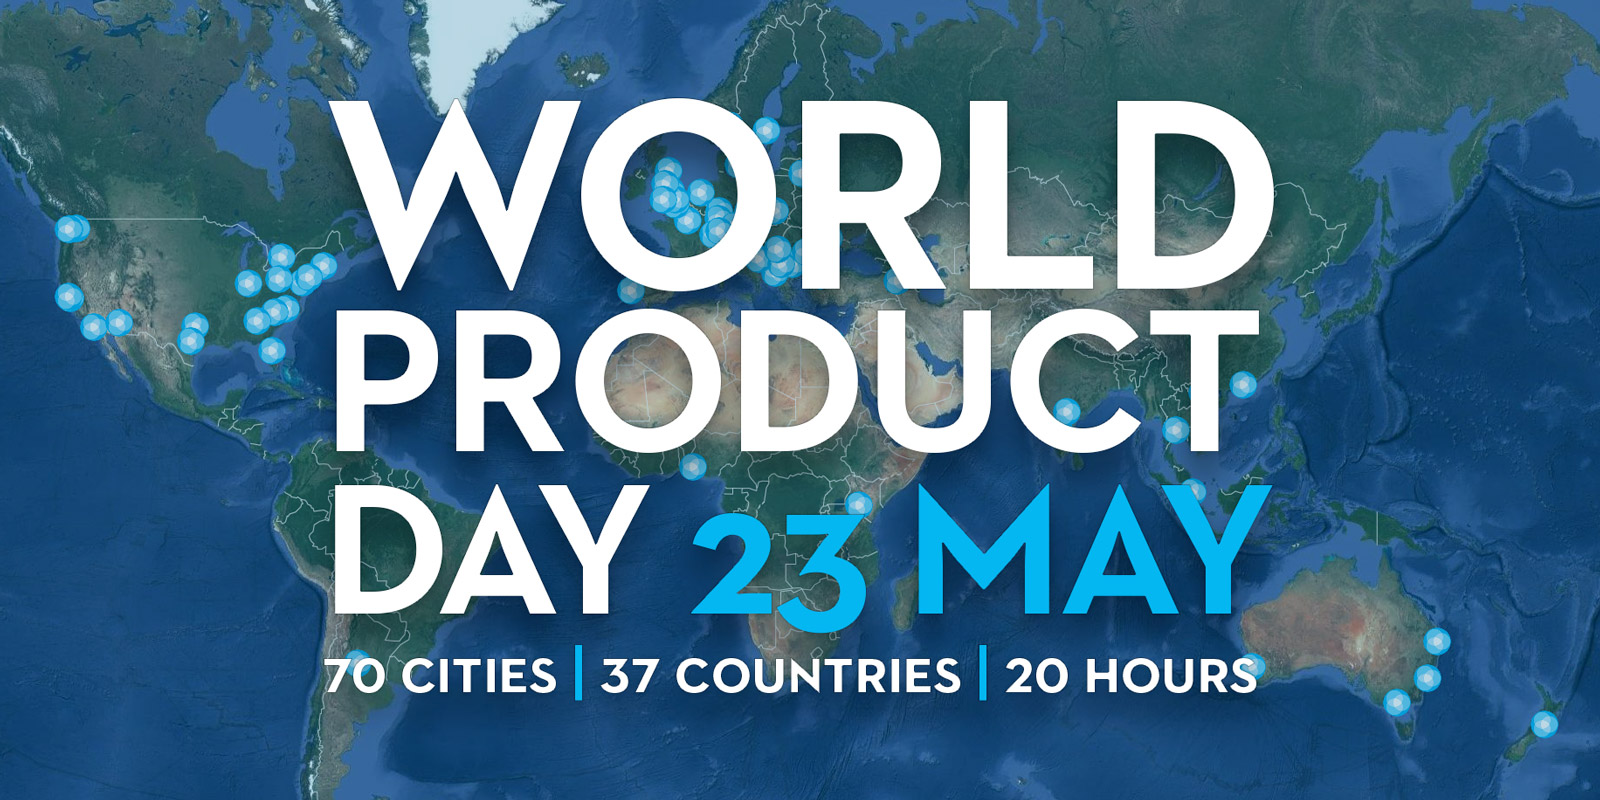 world-product-day.jpg